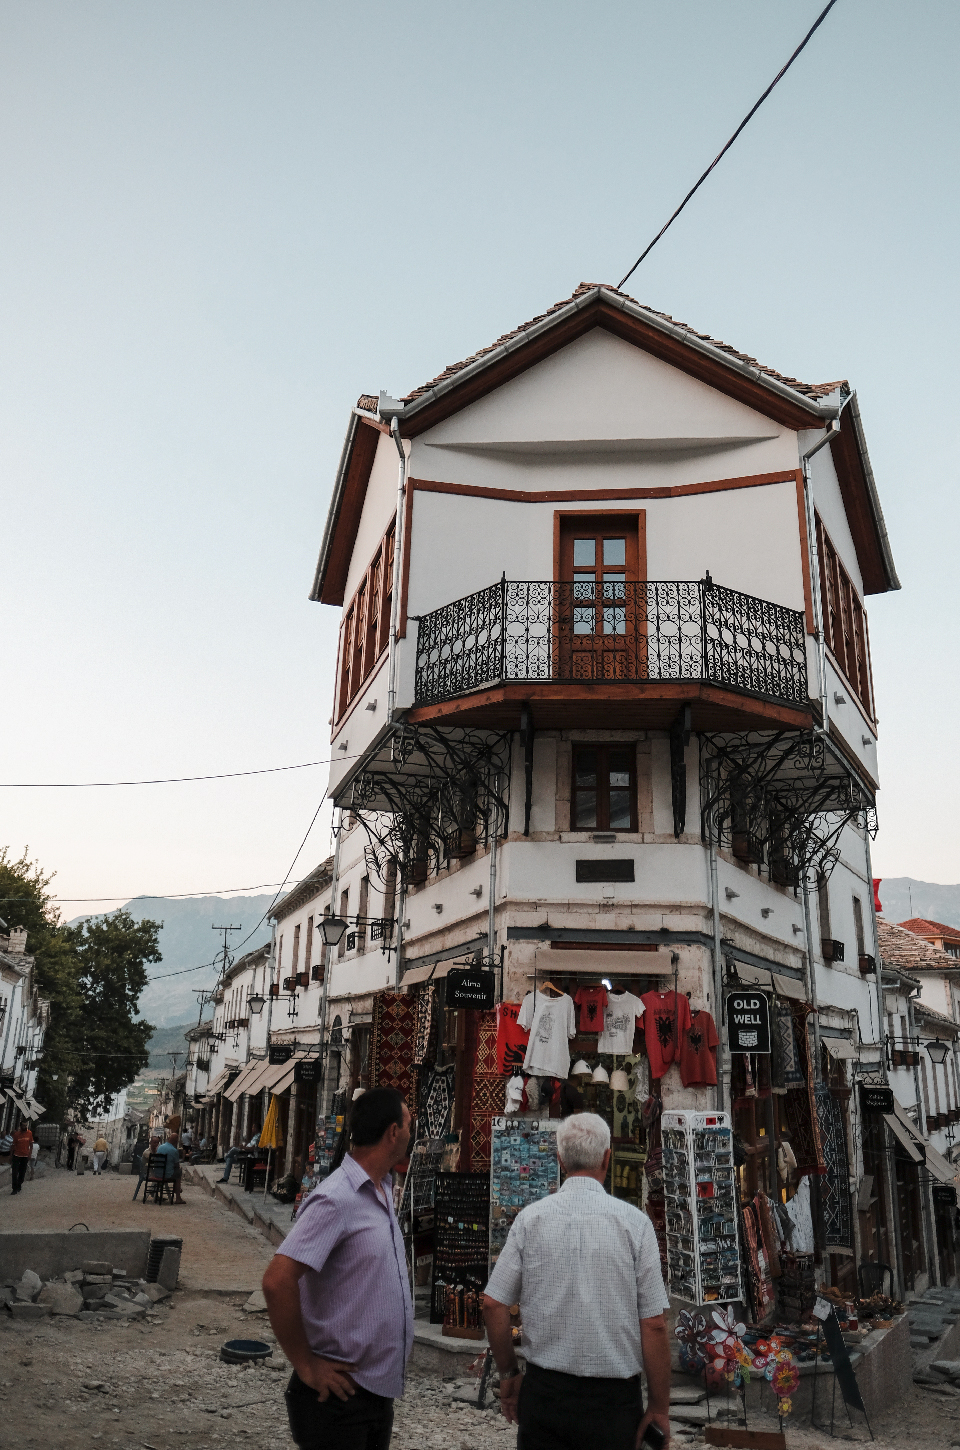 ottoman era house in the center of Gjirokastër, with Alma souvenir shop in the ground level.